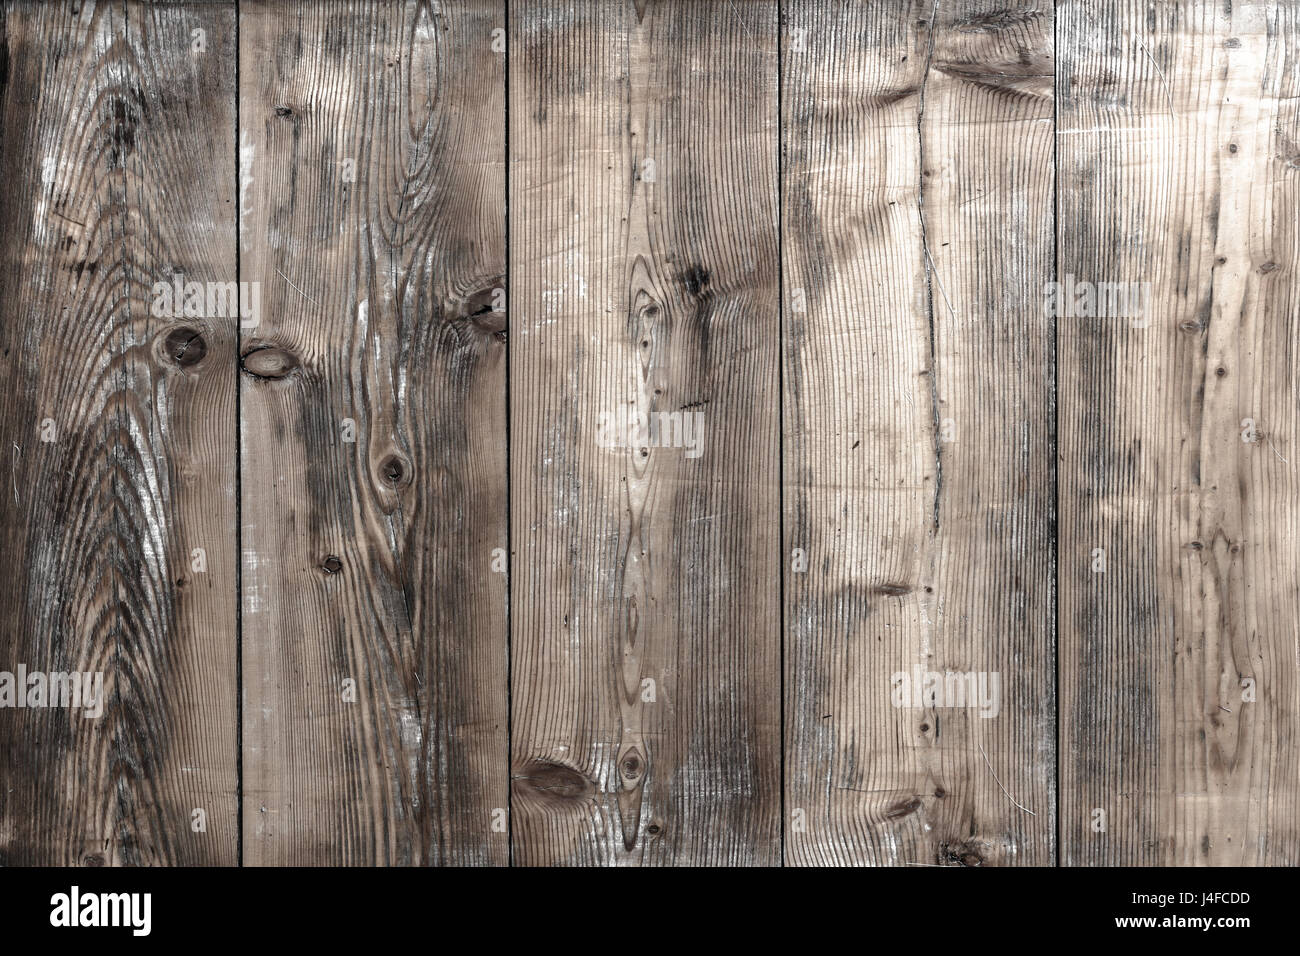 Wood table top texture - Old Brown Timber Wall Or Grain Textured Hardwood Table Top Wood Texture Wooden Background